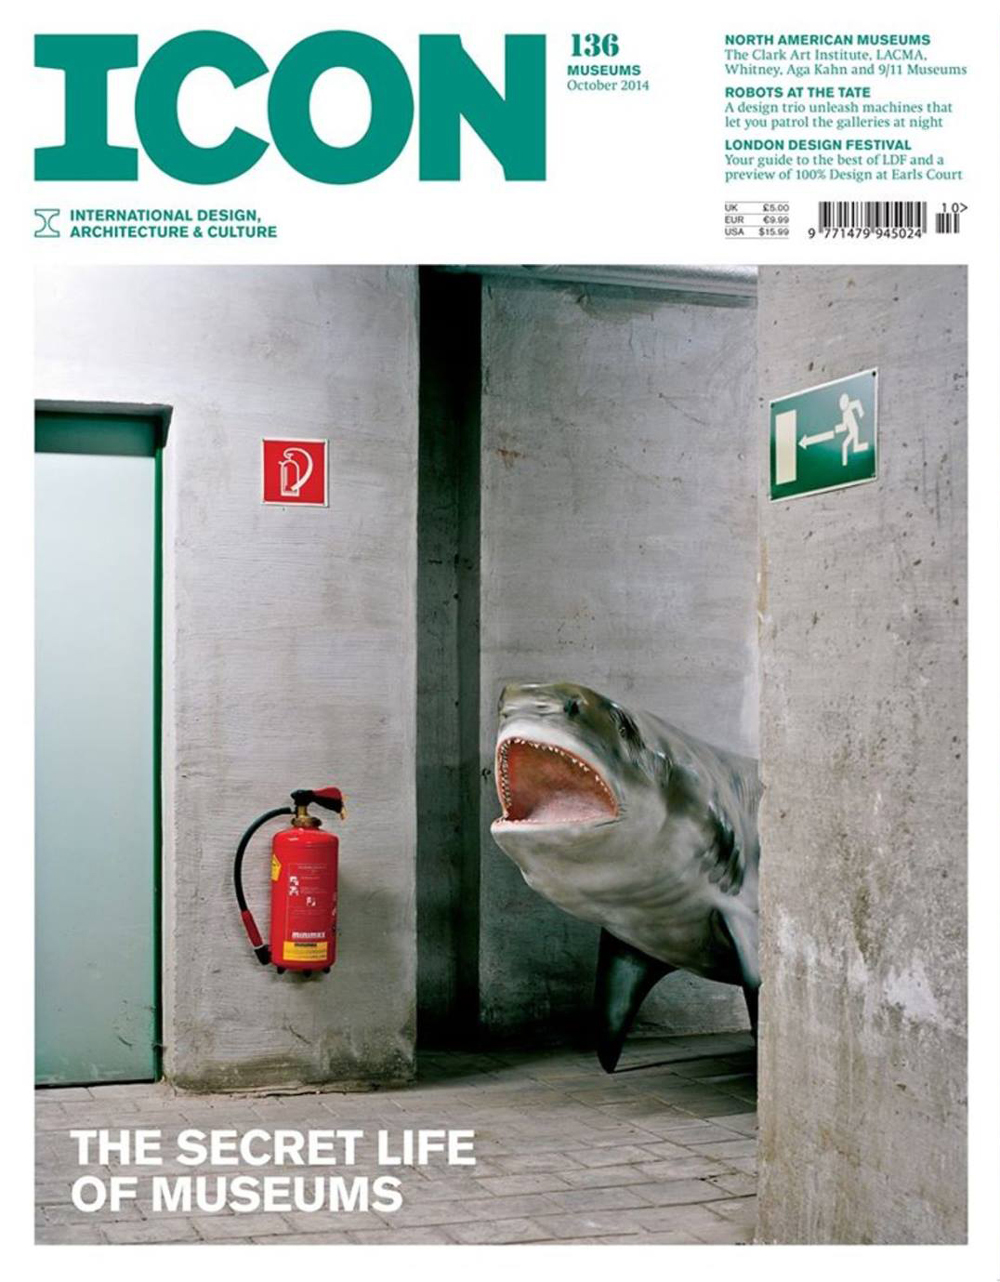 Icon_pub_Mister_1014_COVER.jpg